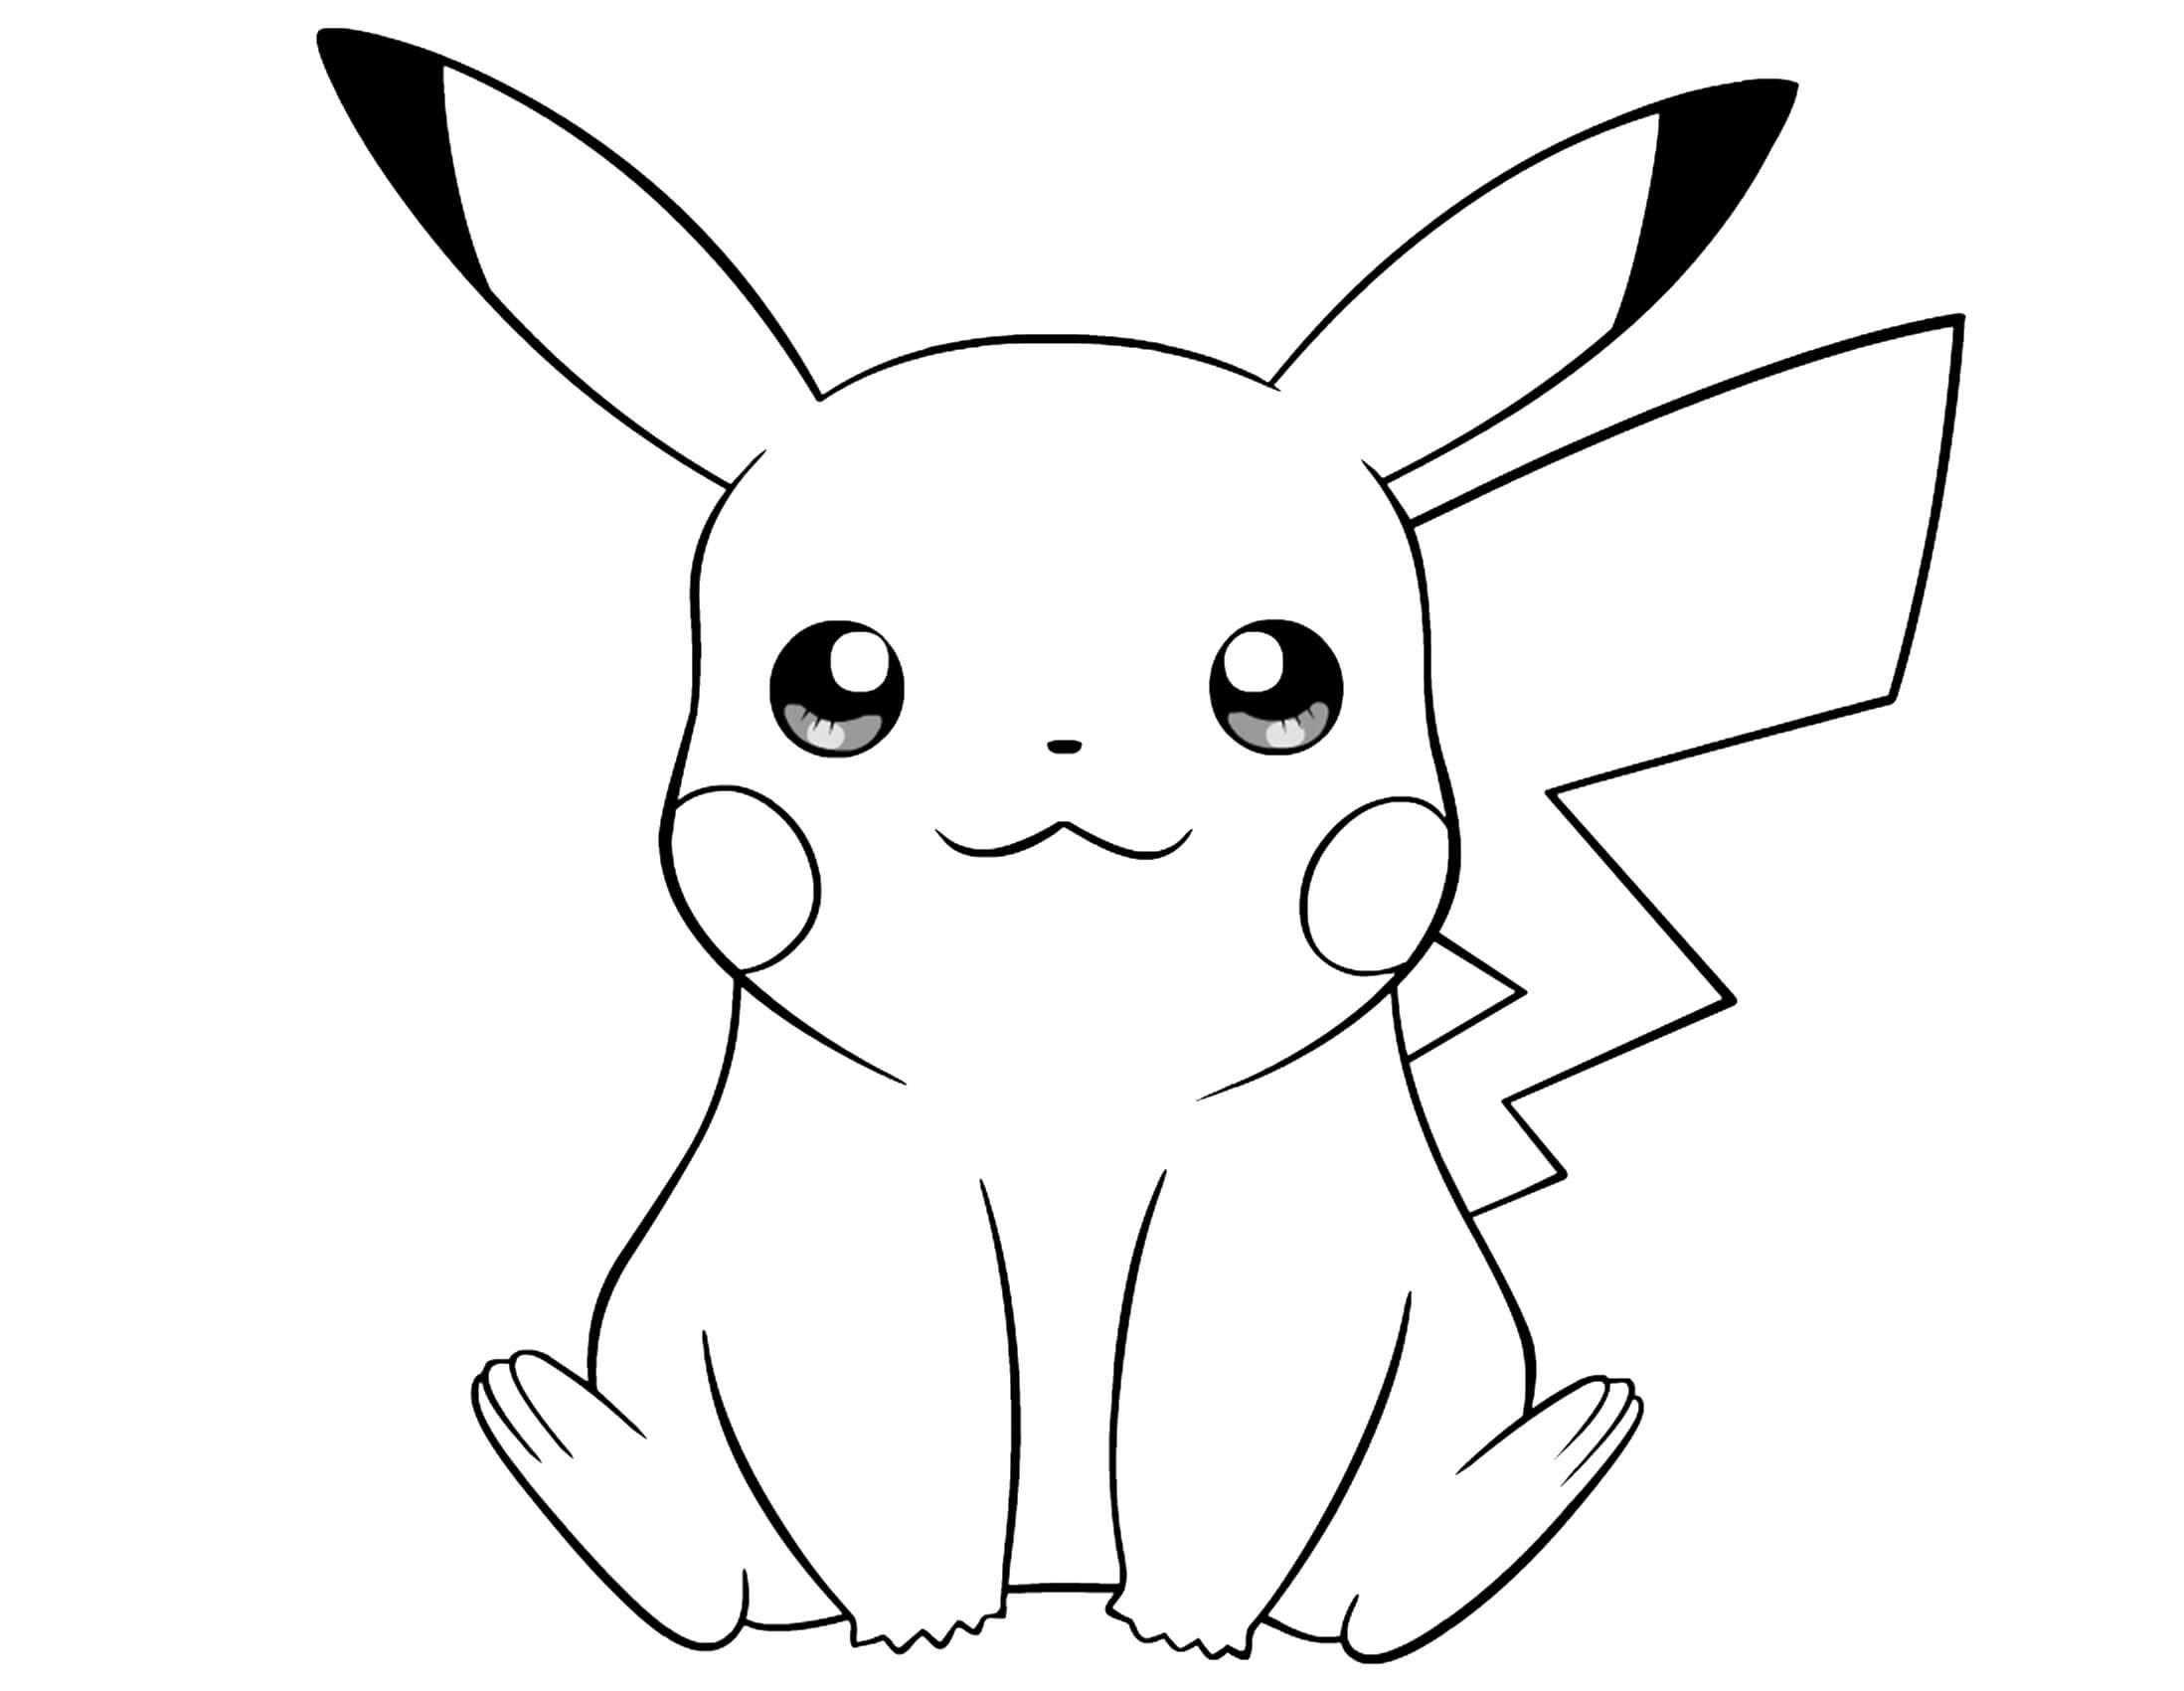 Dibujos Para Colorear Pikachu: Pokemon Coloring Pages